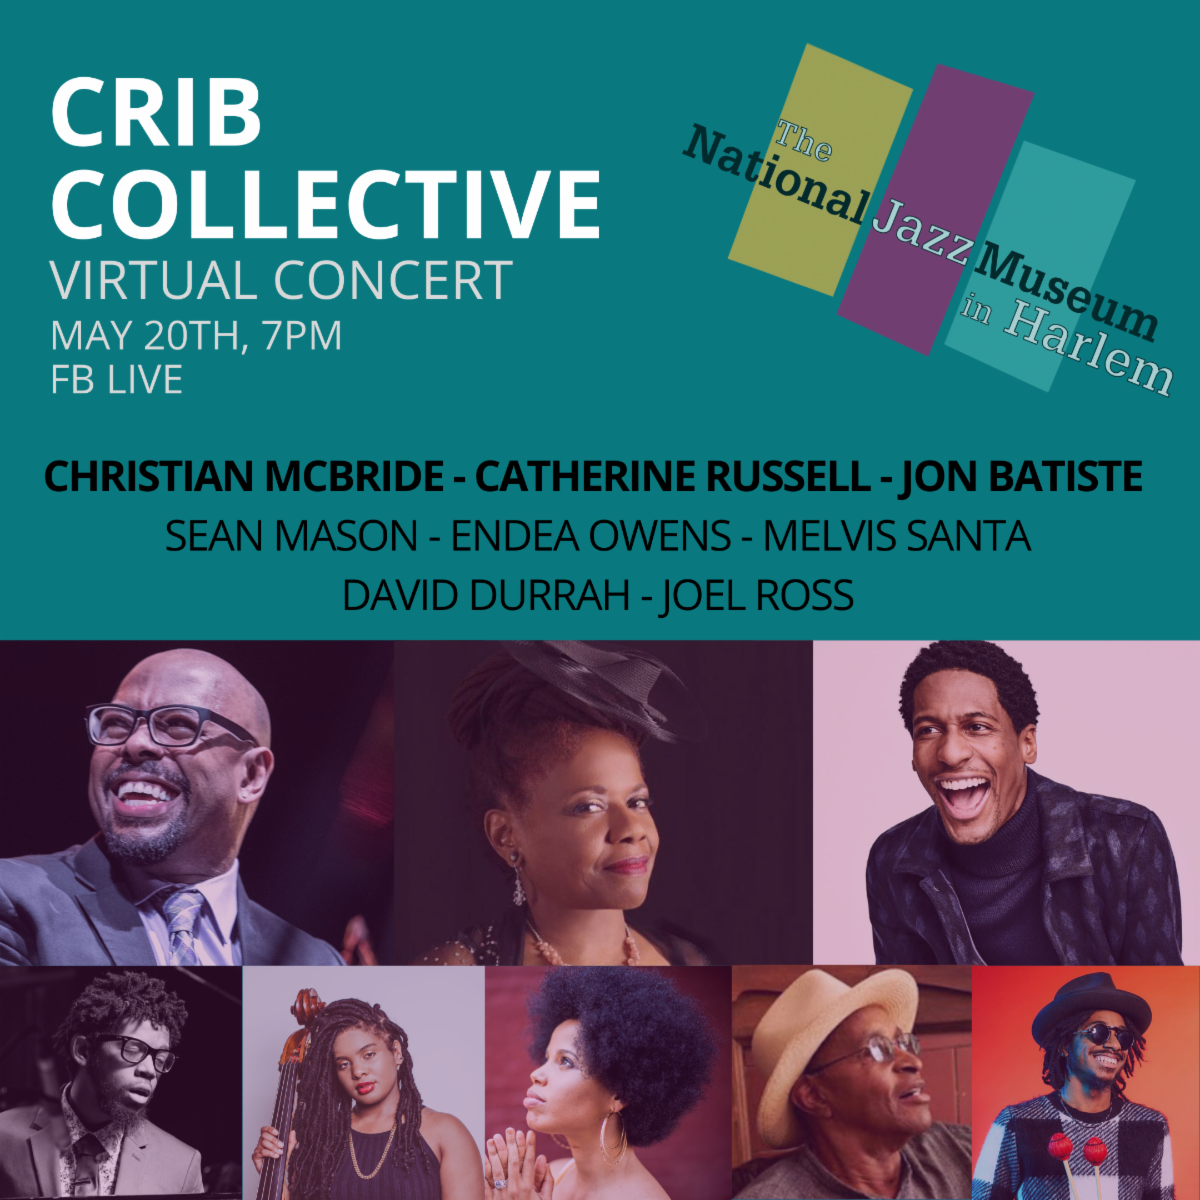 National Jazz Museum CRIB Collective Virtual Concert